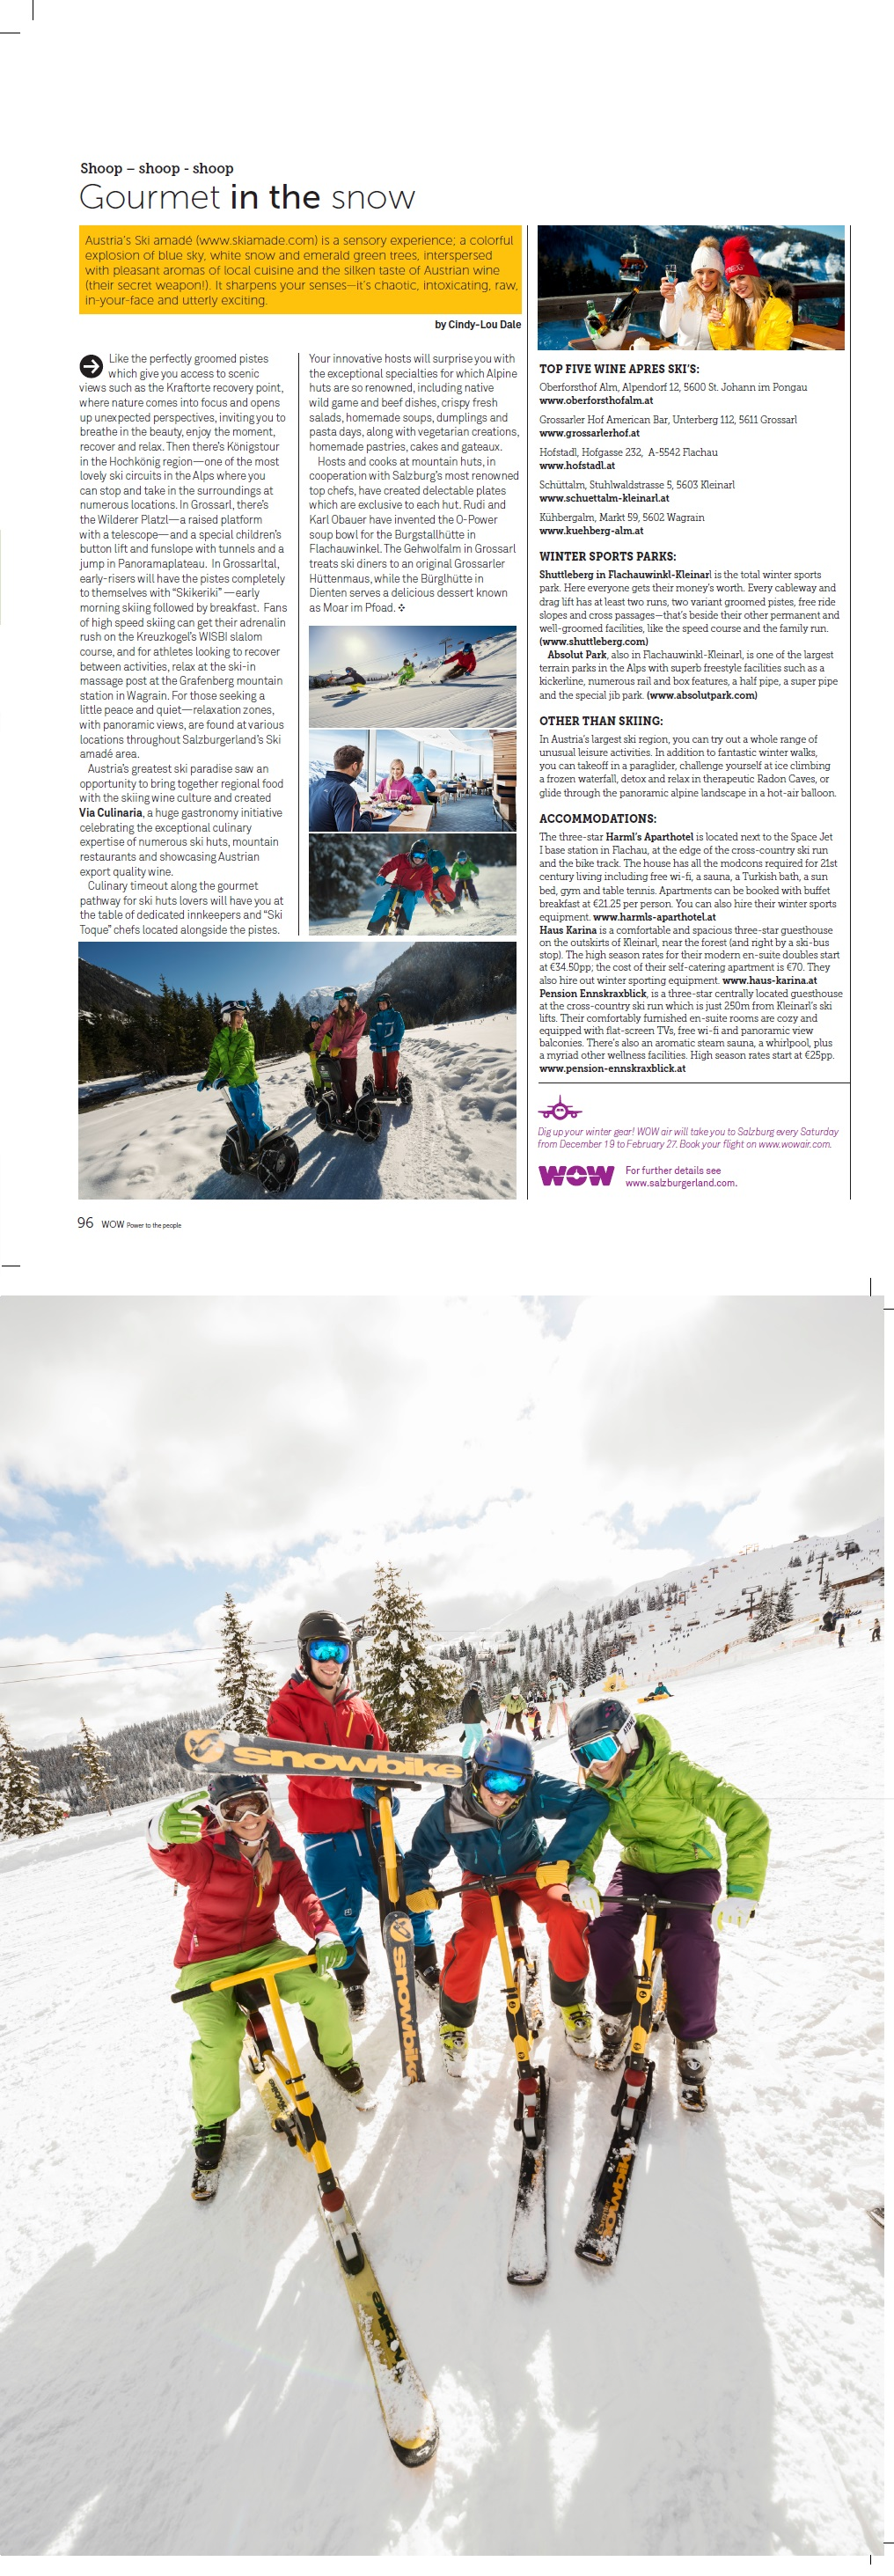 Iceland Wow Air, Austria Gourmet in the snow